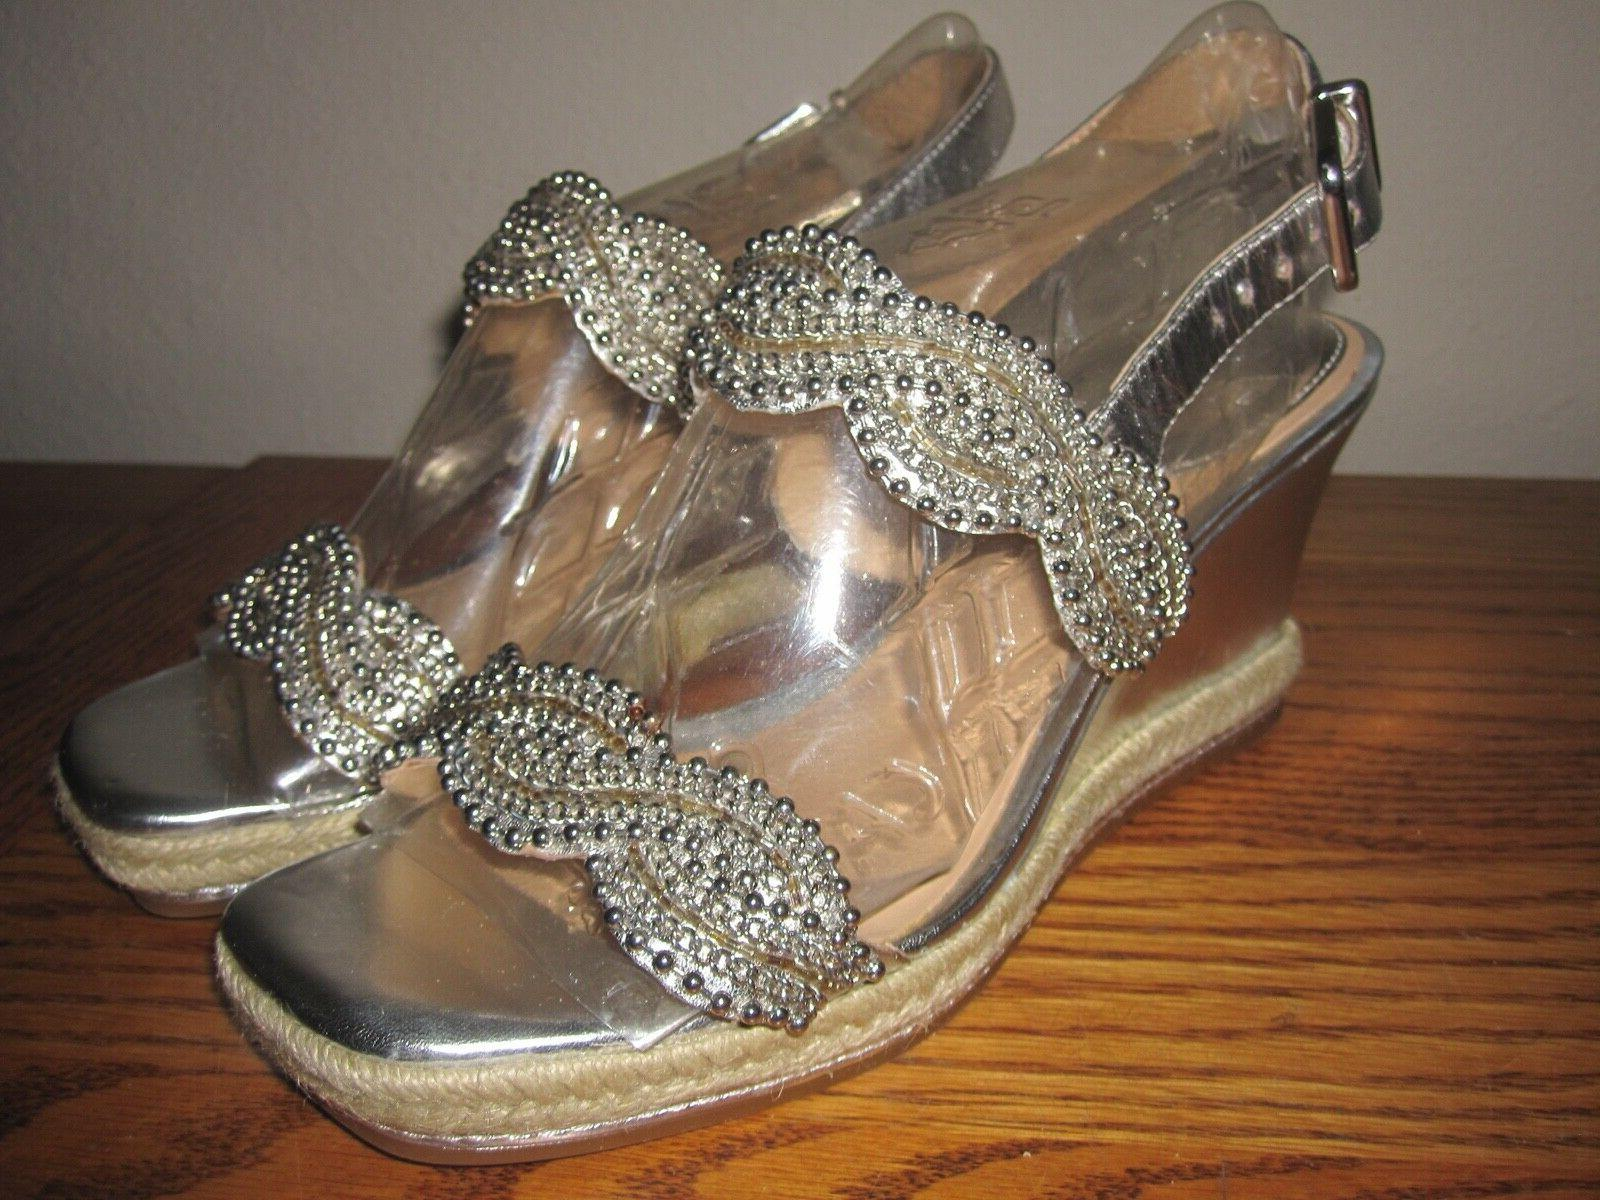 antonio milani metallic silver wedge sandals size